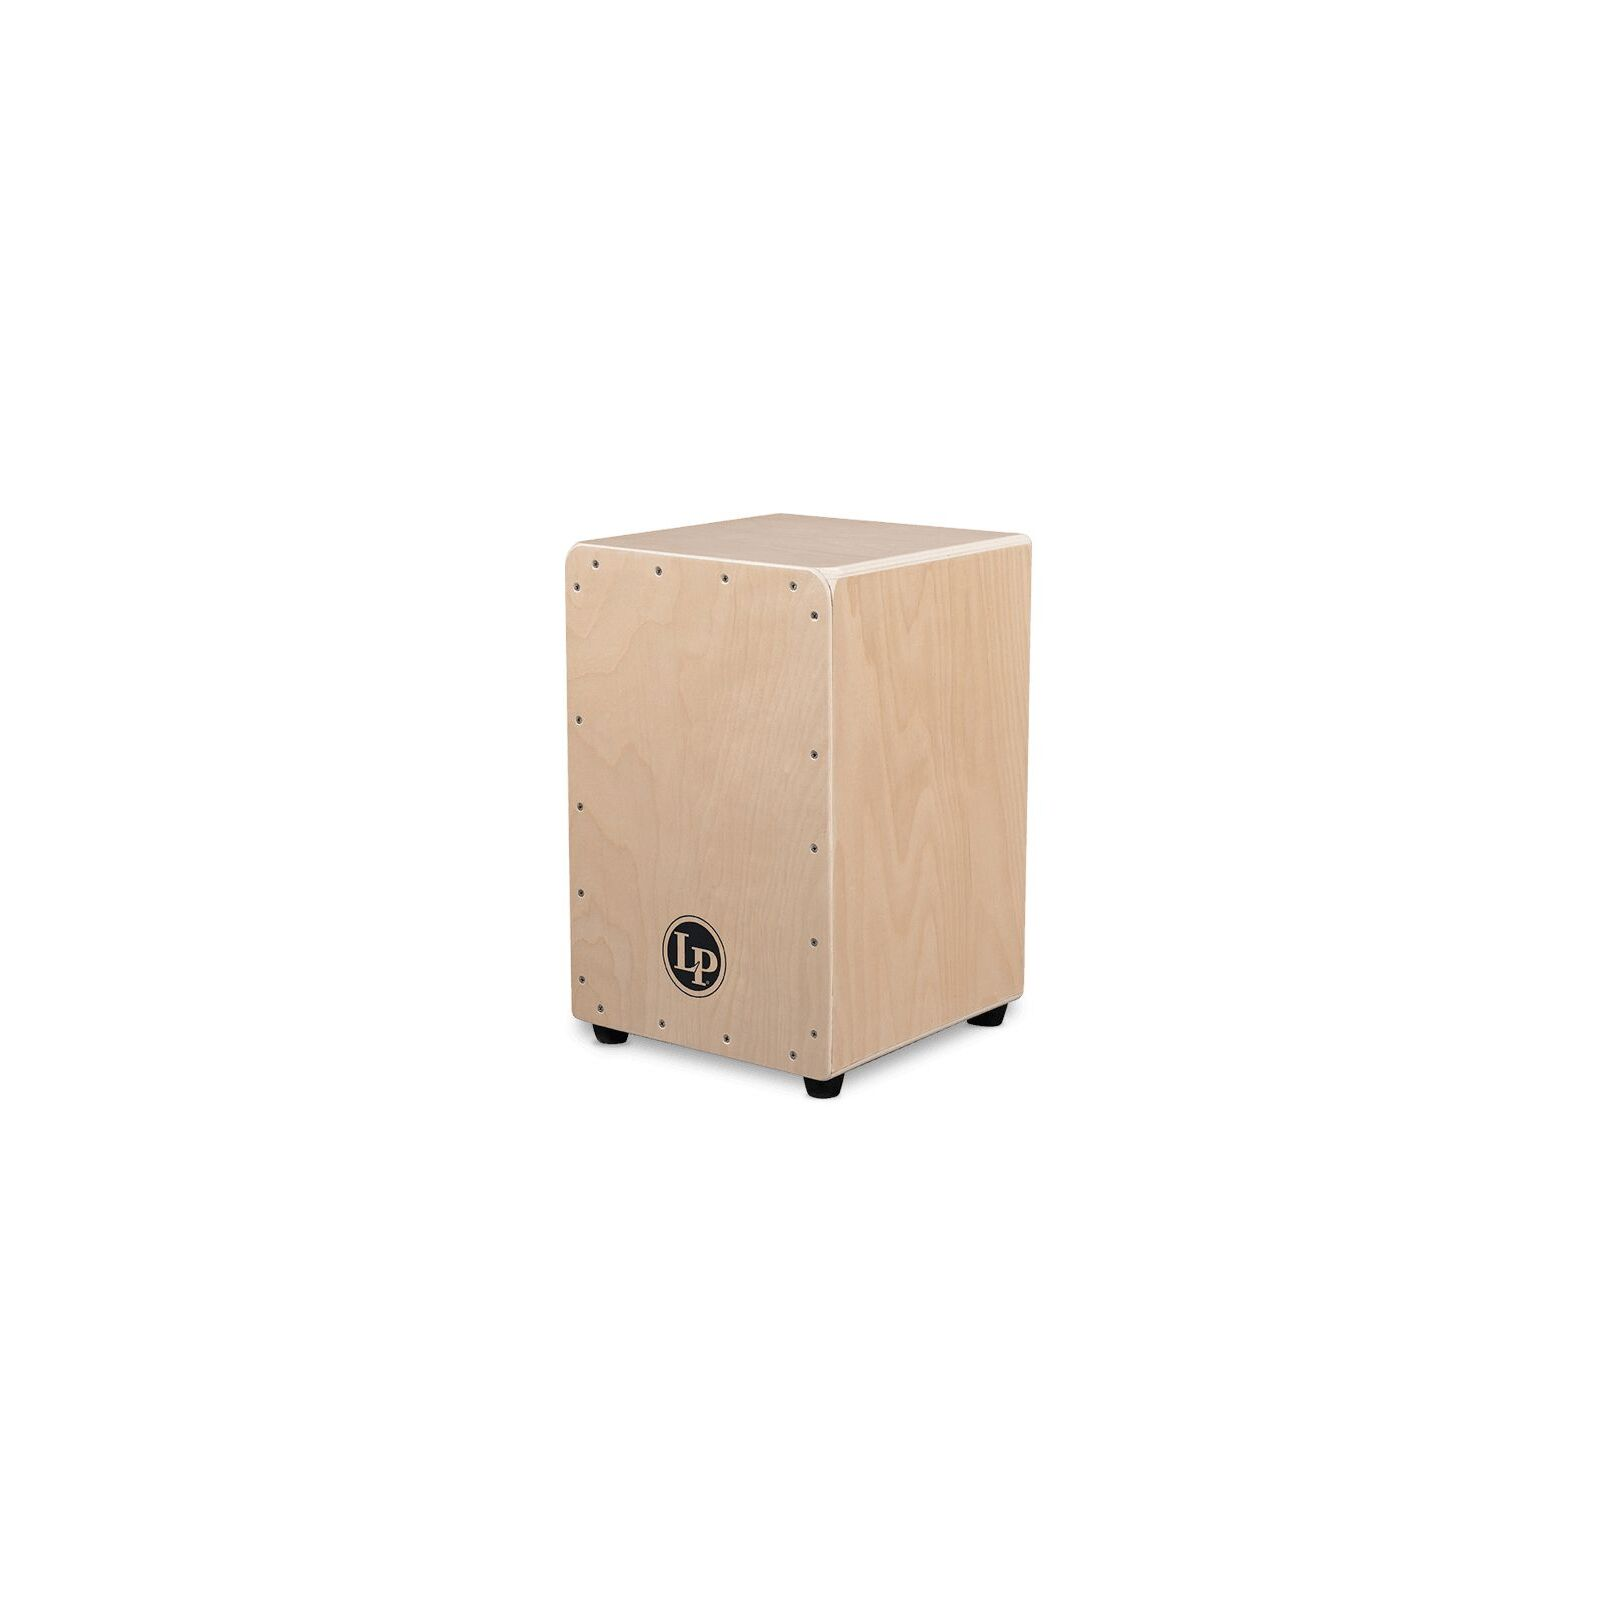 LP Percussion Aspire Natural Wire Cajon LPA1331 Birch/Poplar body